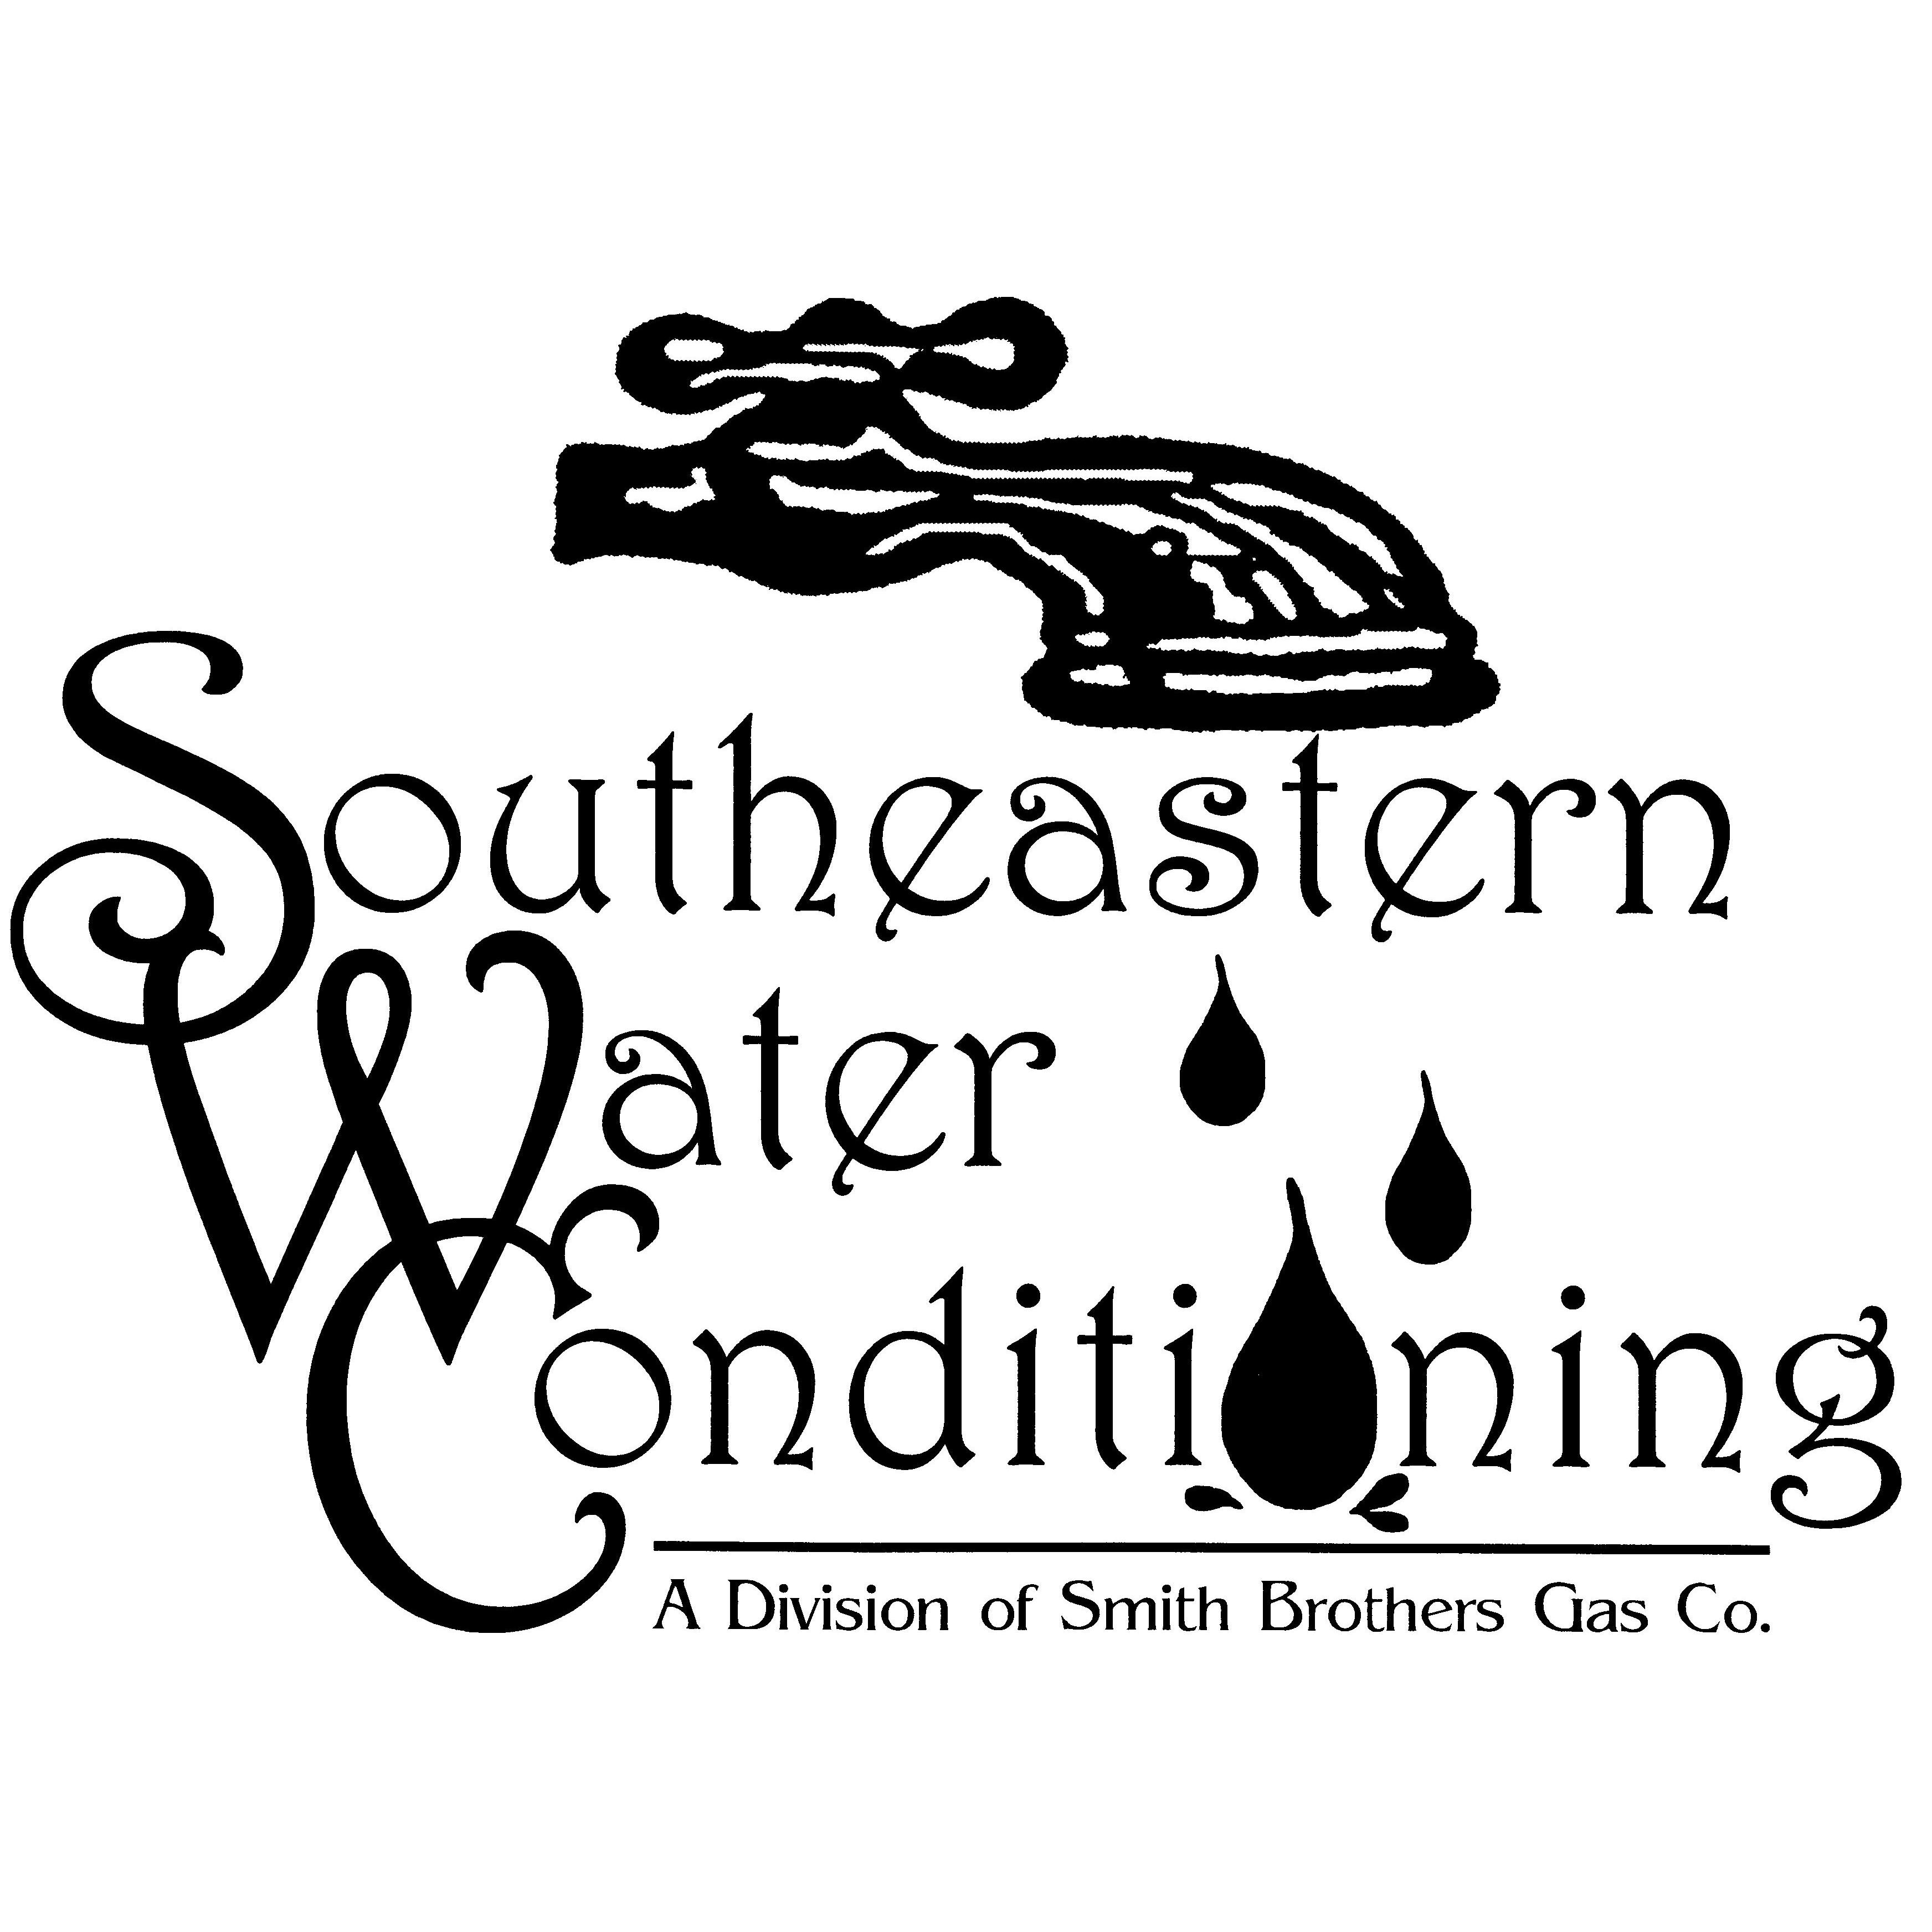 Southeastern Water Conditioning - Magnolia, NC 28453 - (888)225-4874 | ShowMeLocal.com